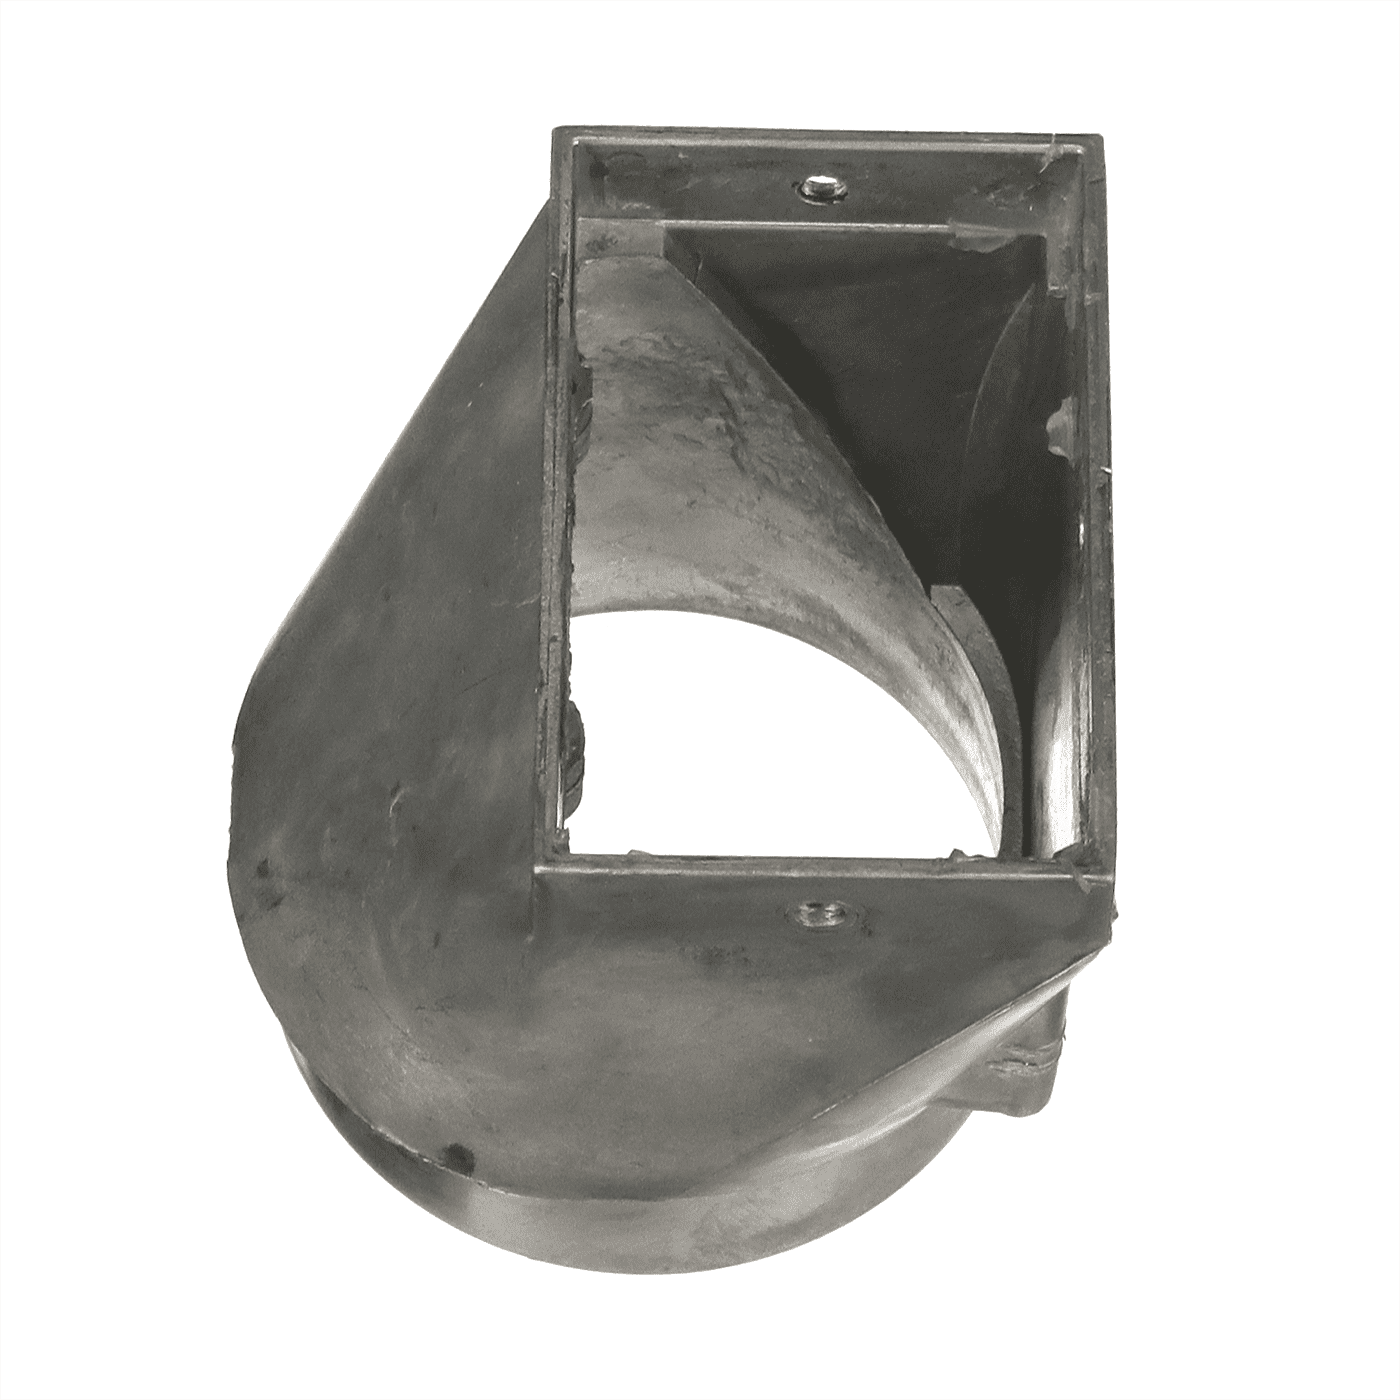 Exhaust Blower Appliance Collar Mount (Tail Pipe) #C-S-999